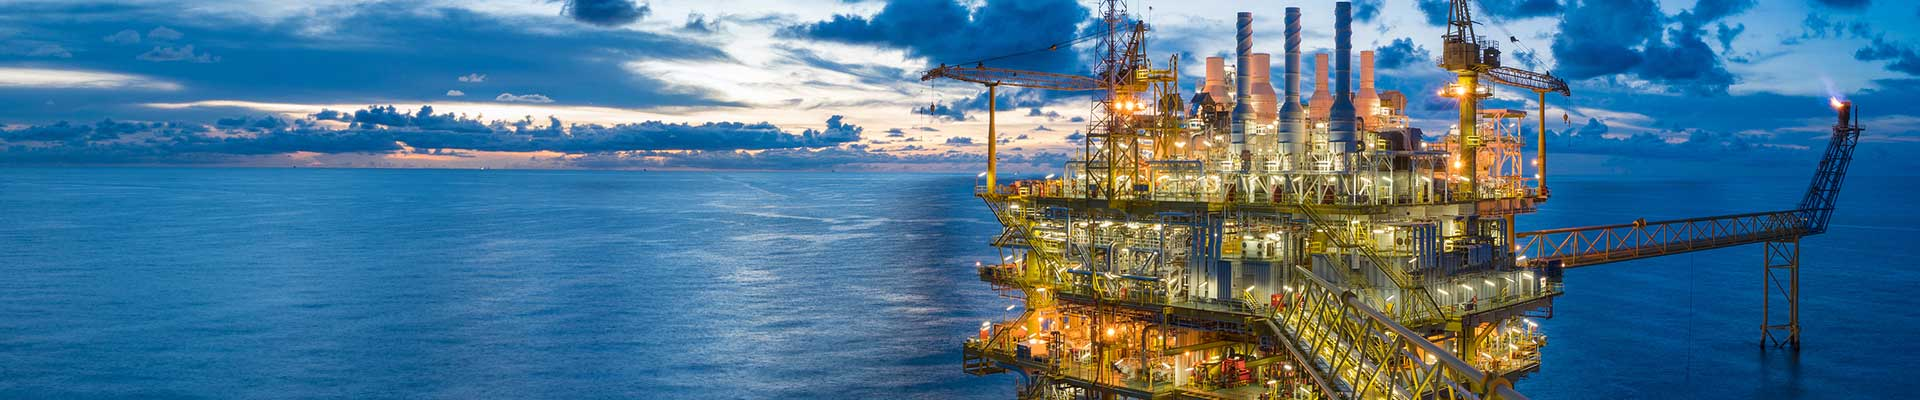 Maritime & Offshore Accidents - Mudd Bruchhaus & Keating Law